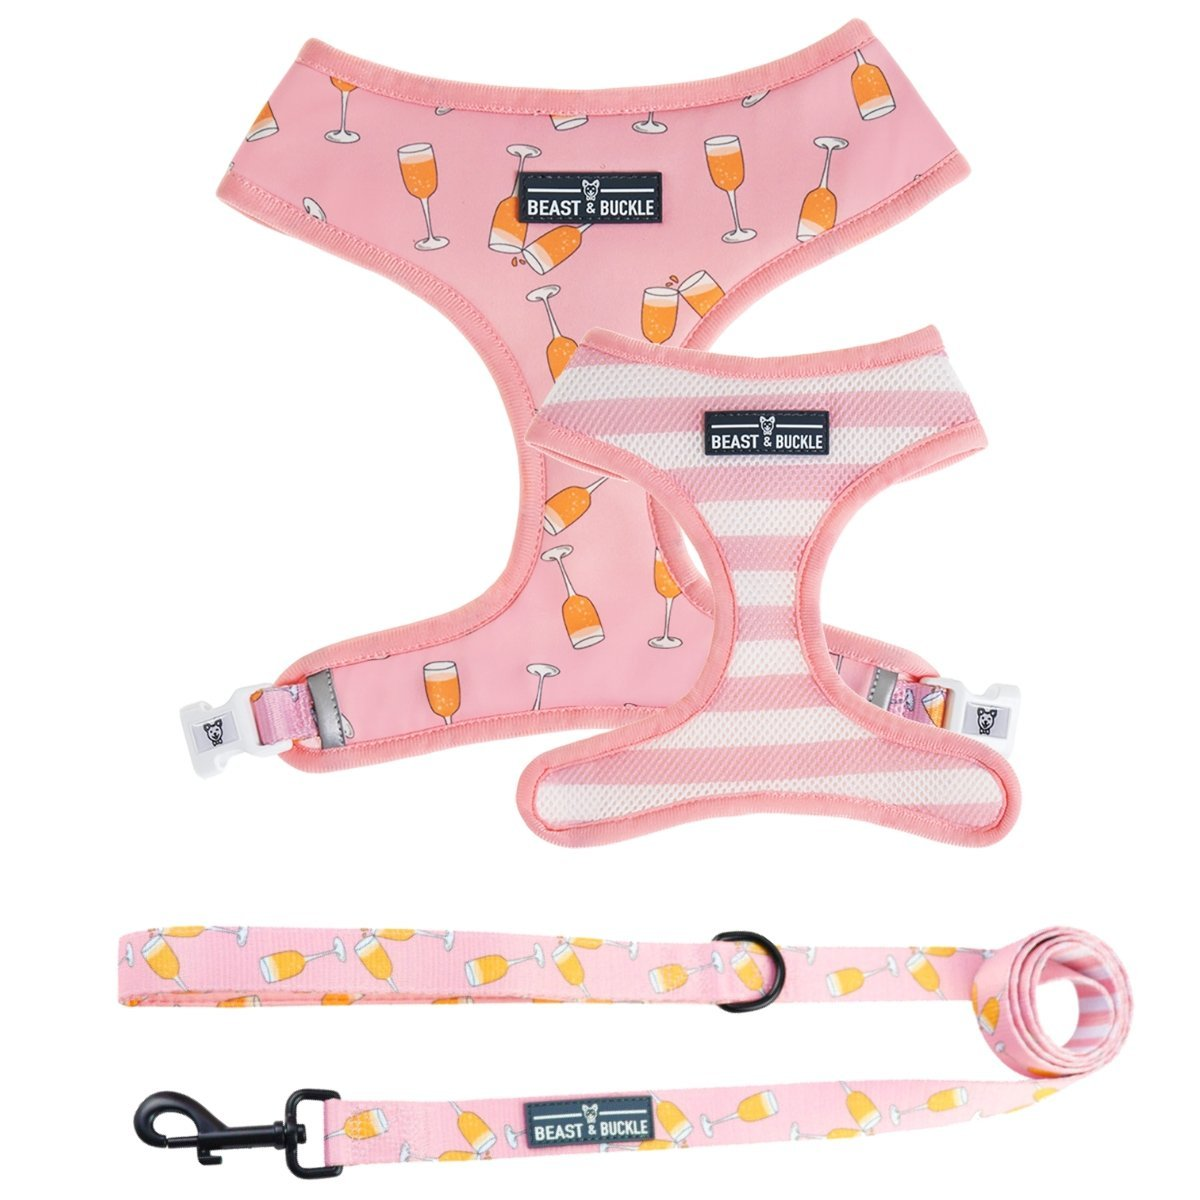 Mimosas Harness and Leash Set - Beast & Buckle